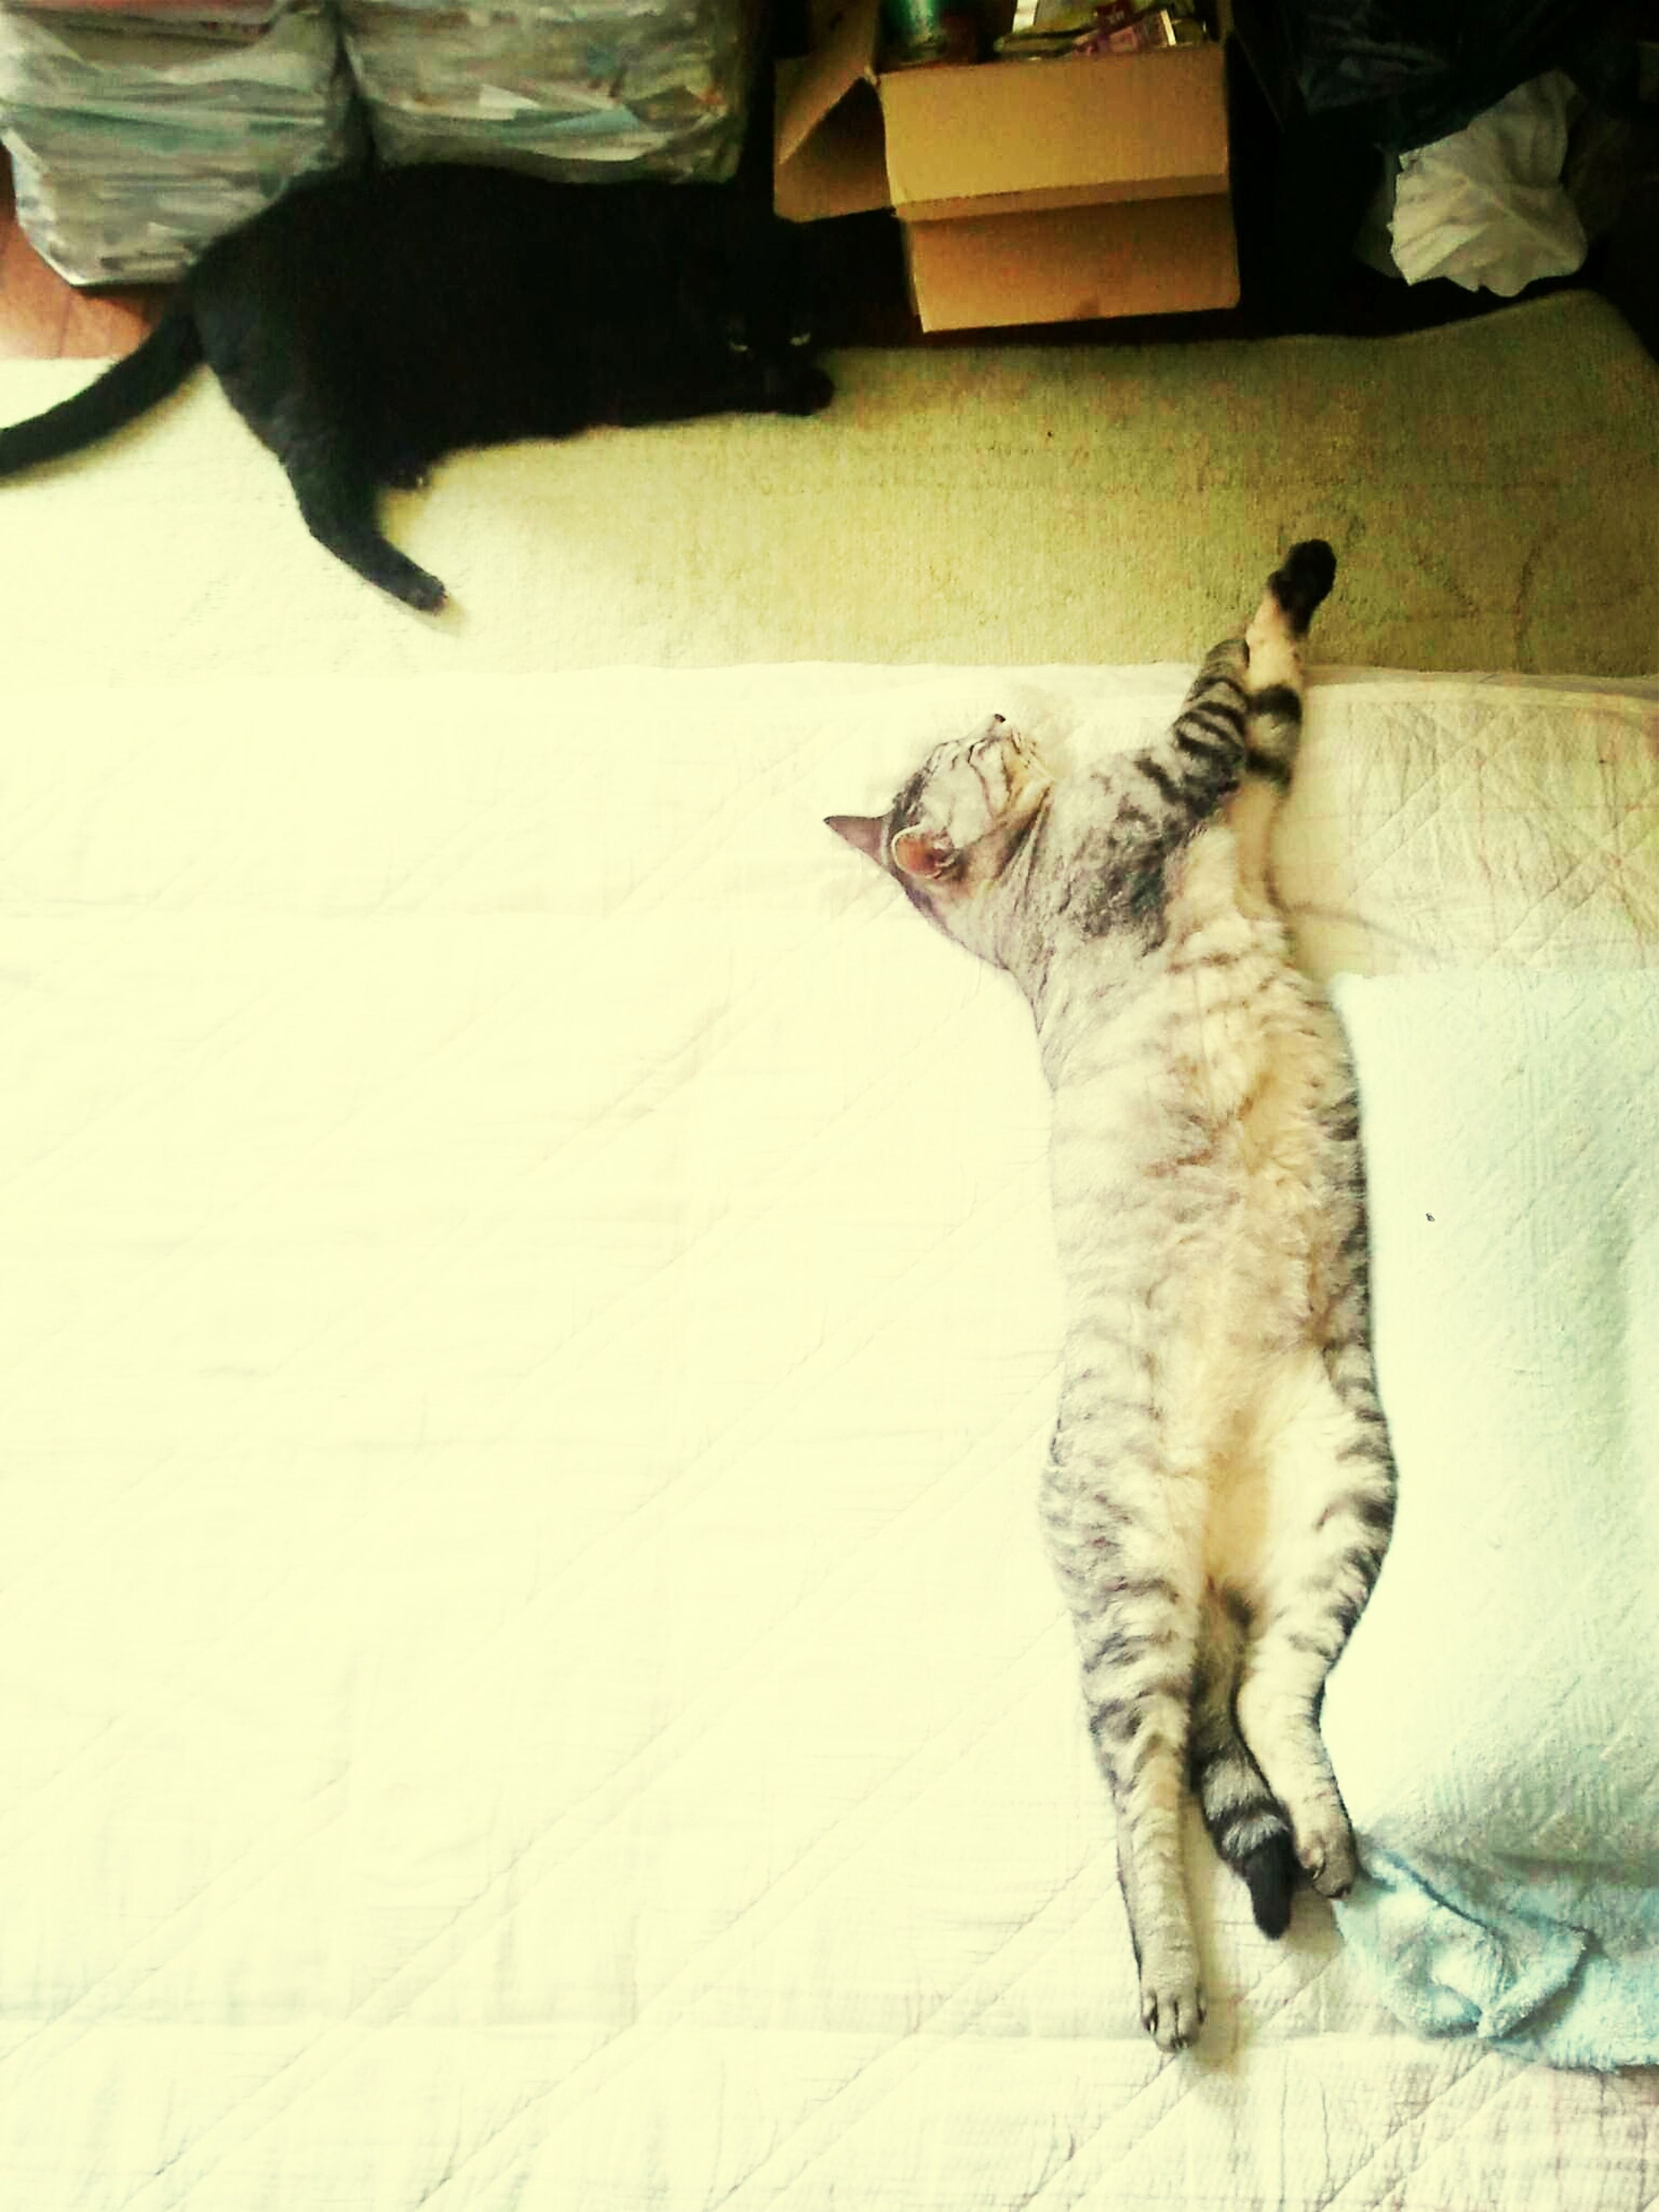 domestic animals, pets, animal themes, mammal, one animal, indoors, domestic cat, cat, relaxation, feline, lying down, home interior, resting, dog, two animals, full length, high angle view, sitting, home, flooring